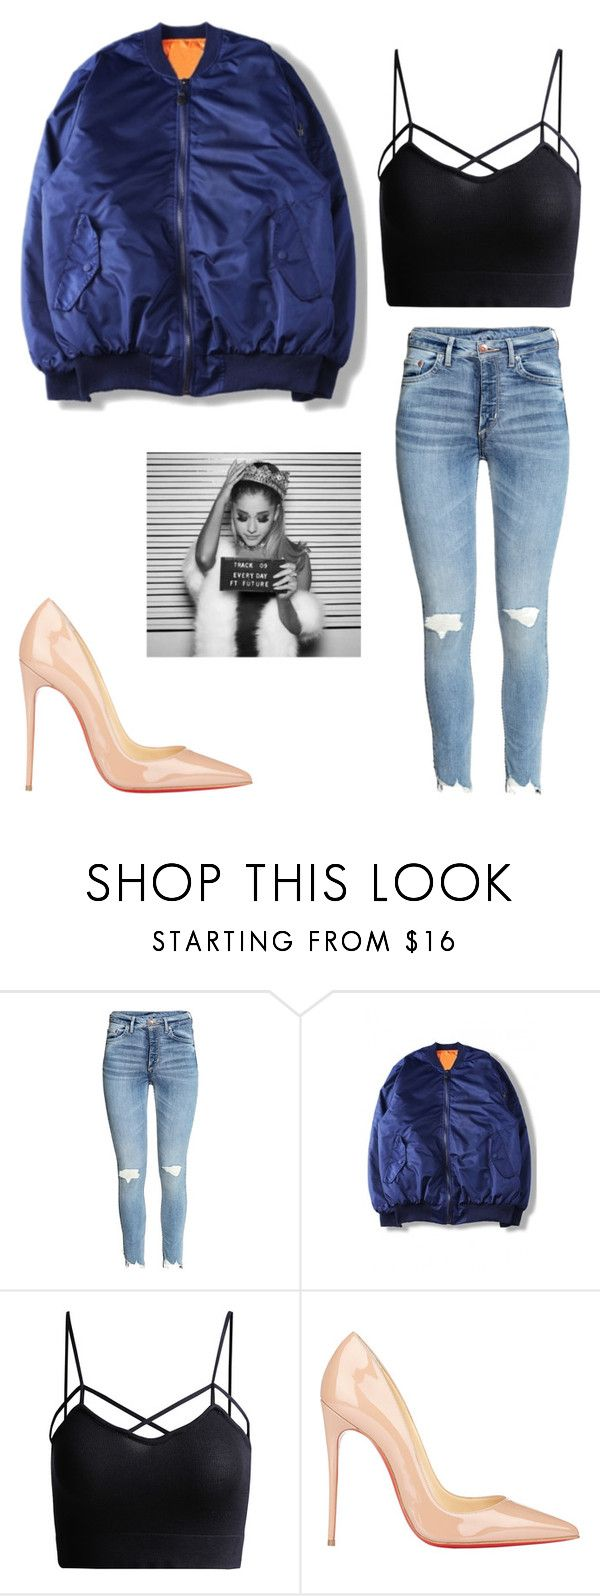 """Ariana Grande ""Everyday"" Get The Look"" by jesysminn on Polyvore featuring WithChic, Christian Louboutin, GetTheLook, ArianaGrande and everyday"